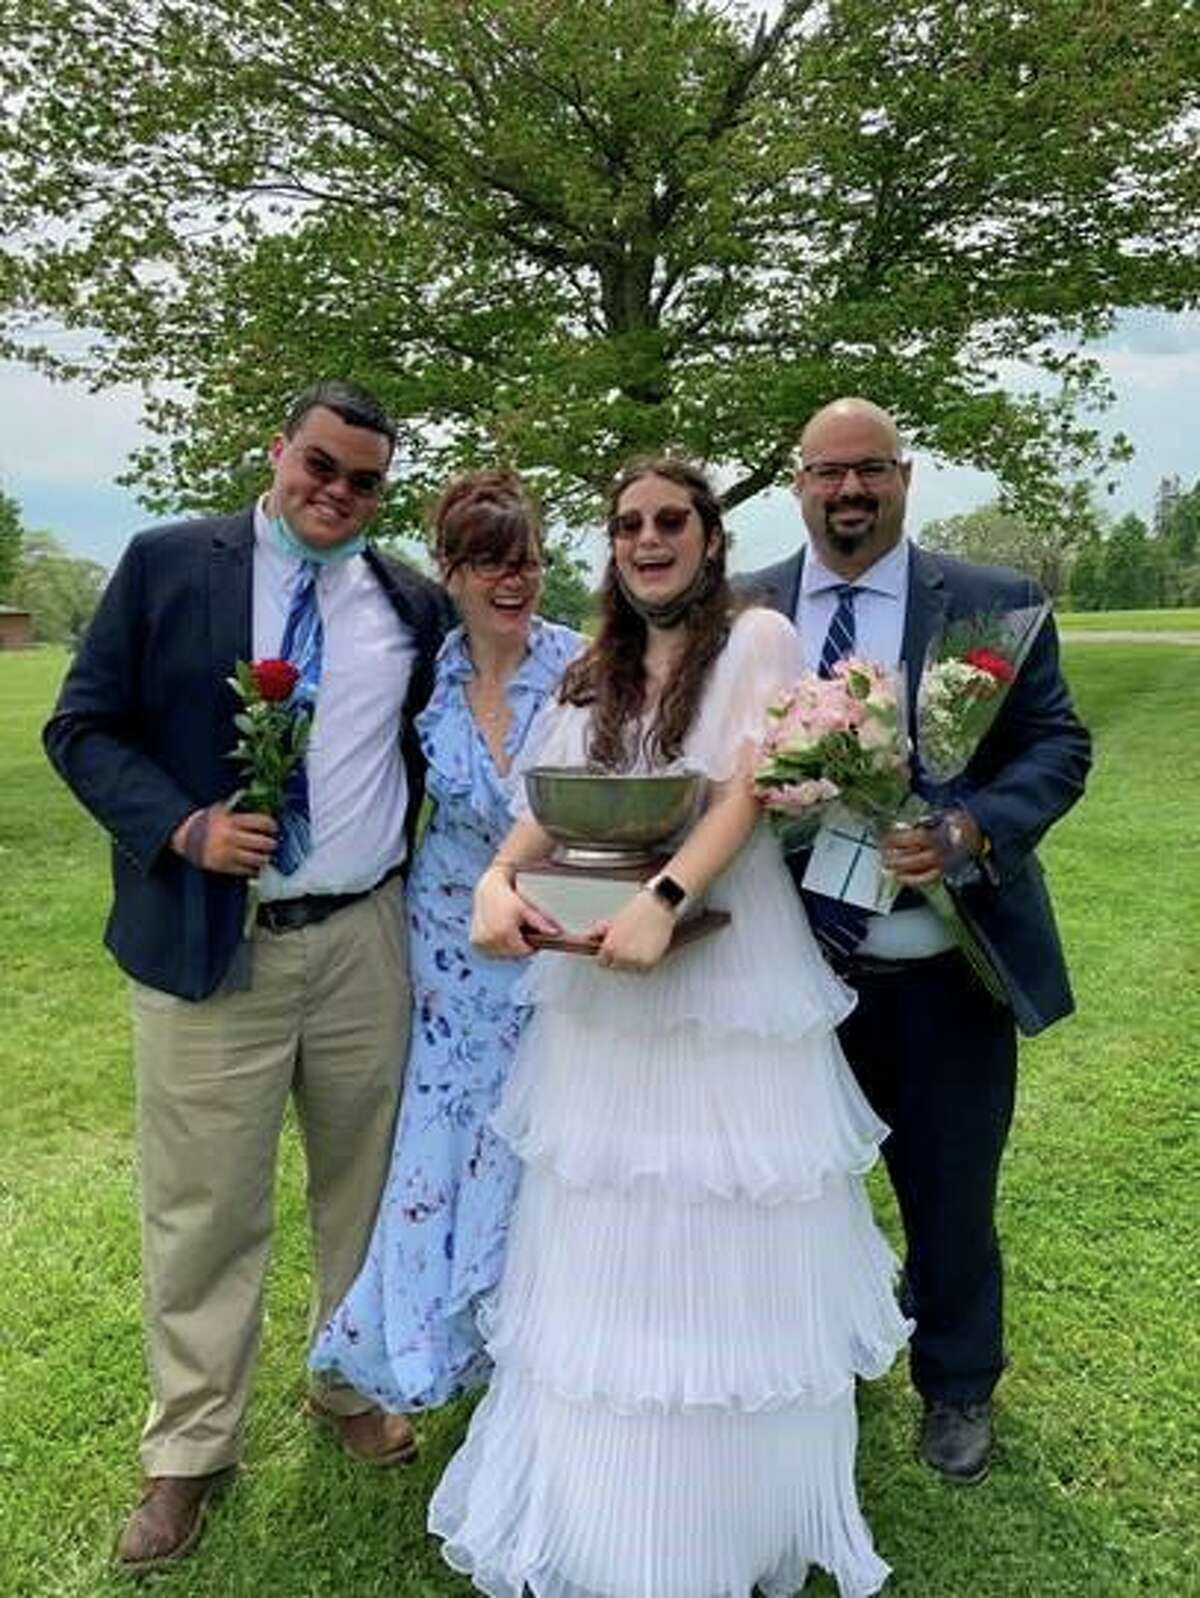 Co-Valendicatorian and Wittenberg Cup recipient Olivia Pignataro with her brother Nick '18 and their parents, Elizabeth and Carl Pignataro. Pignatoro was among 27 Marvelwood School students to graduate in an outdoor ceremony on Saturday, May 22, 2021 in Kent, Conn.